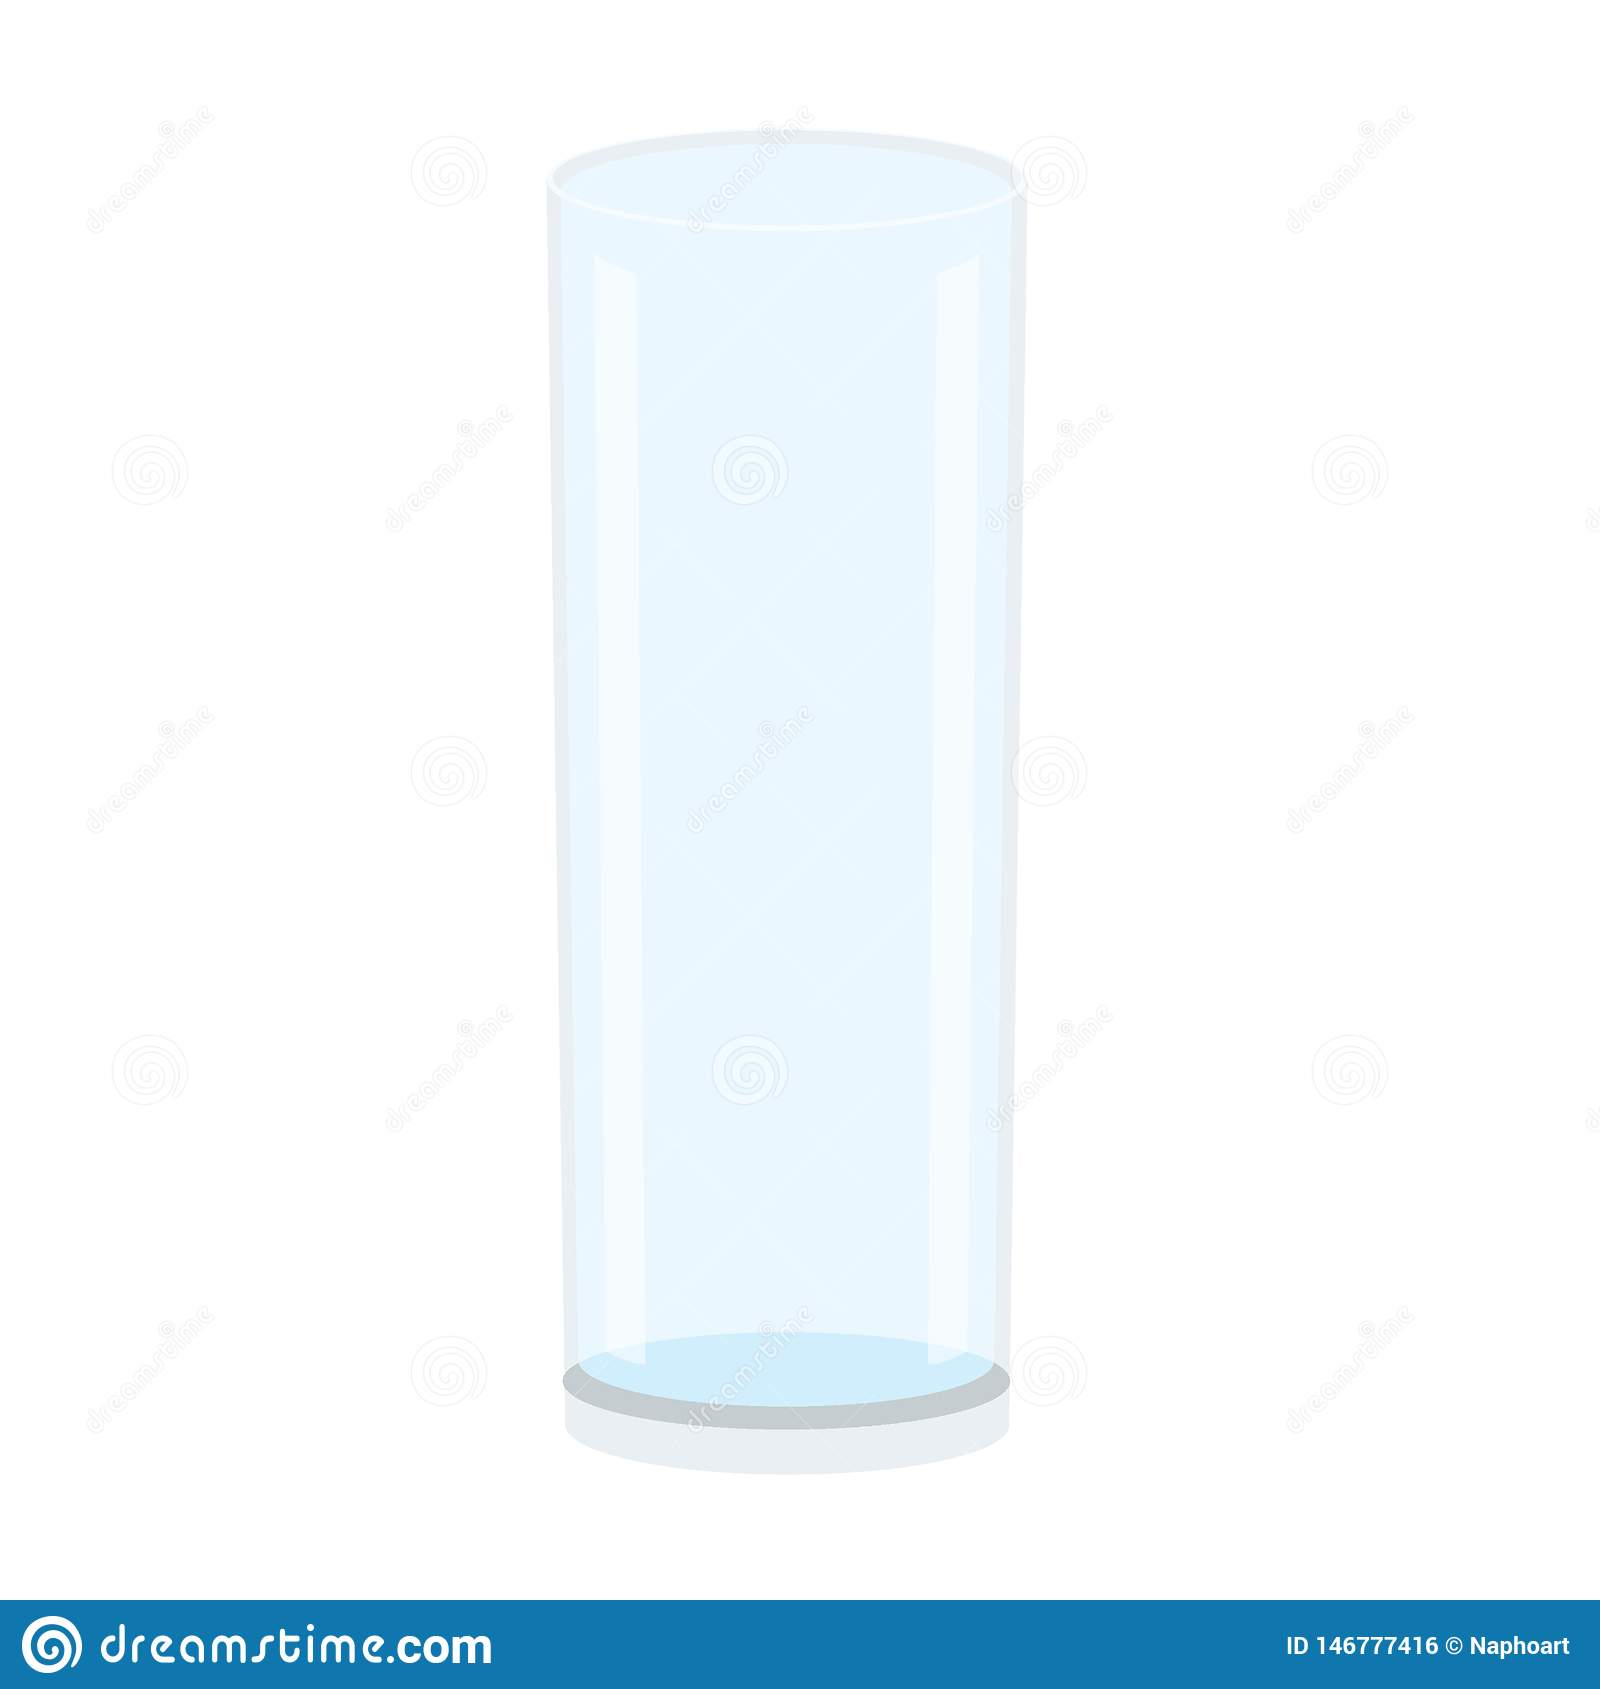 Blue, white, Gray,clear, transparent, bright, drink, Glass, water, mineral water, Cold water, hot water , cup, background, textur